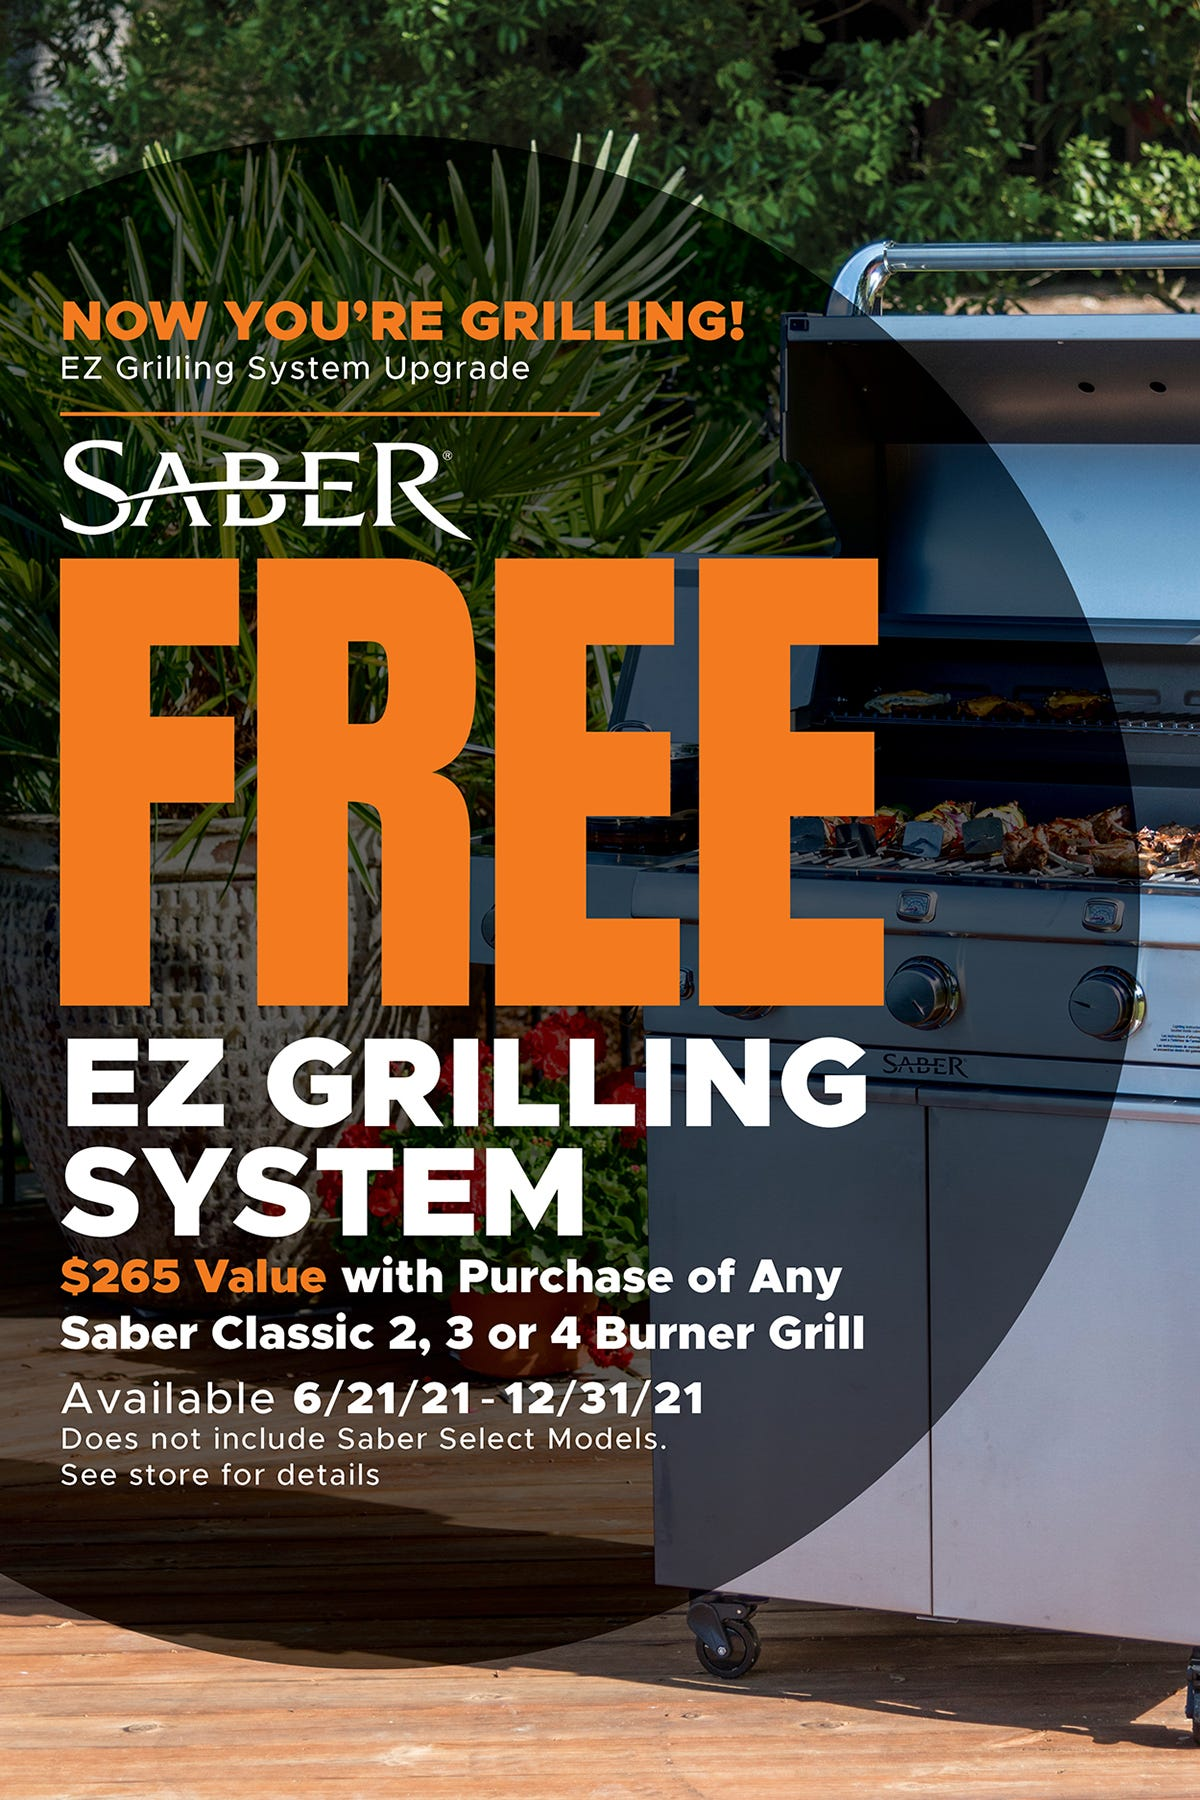 Limited Time Only Offer. EZ Grilling System Upgrade. Free EZ Grilling System with the purchase of an SABER Classic 2, 3 or 4 burner grill. Offer expires 12/31/21.